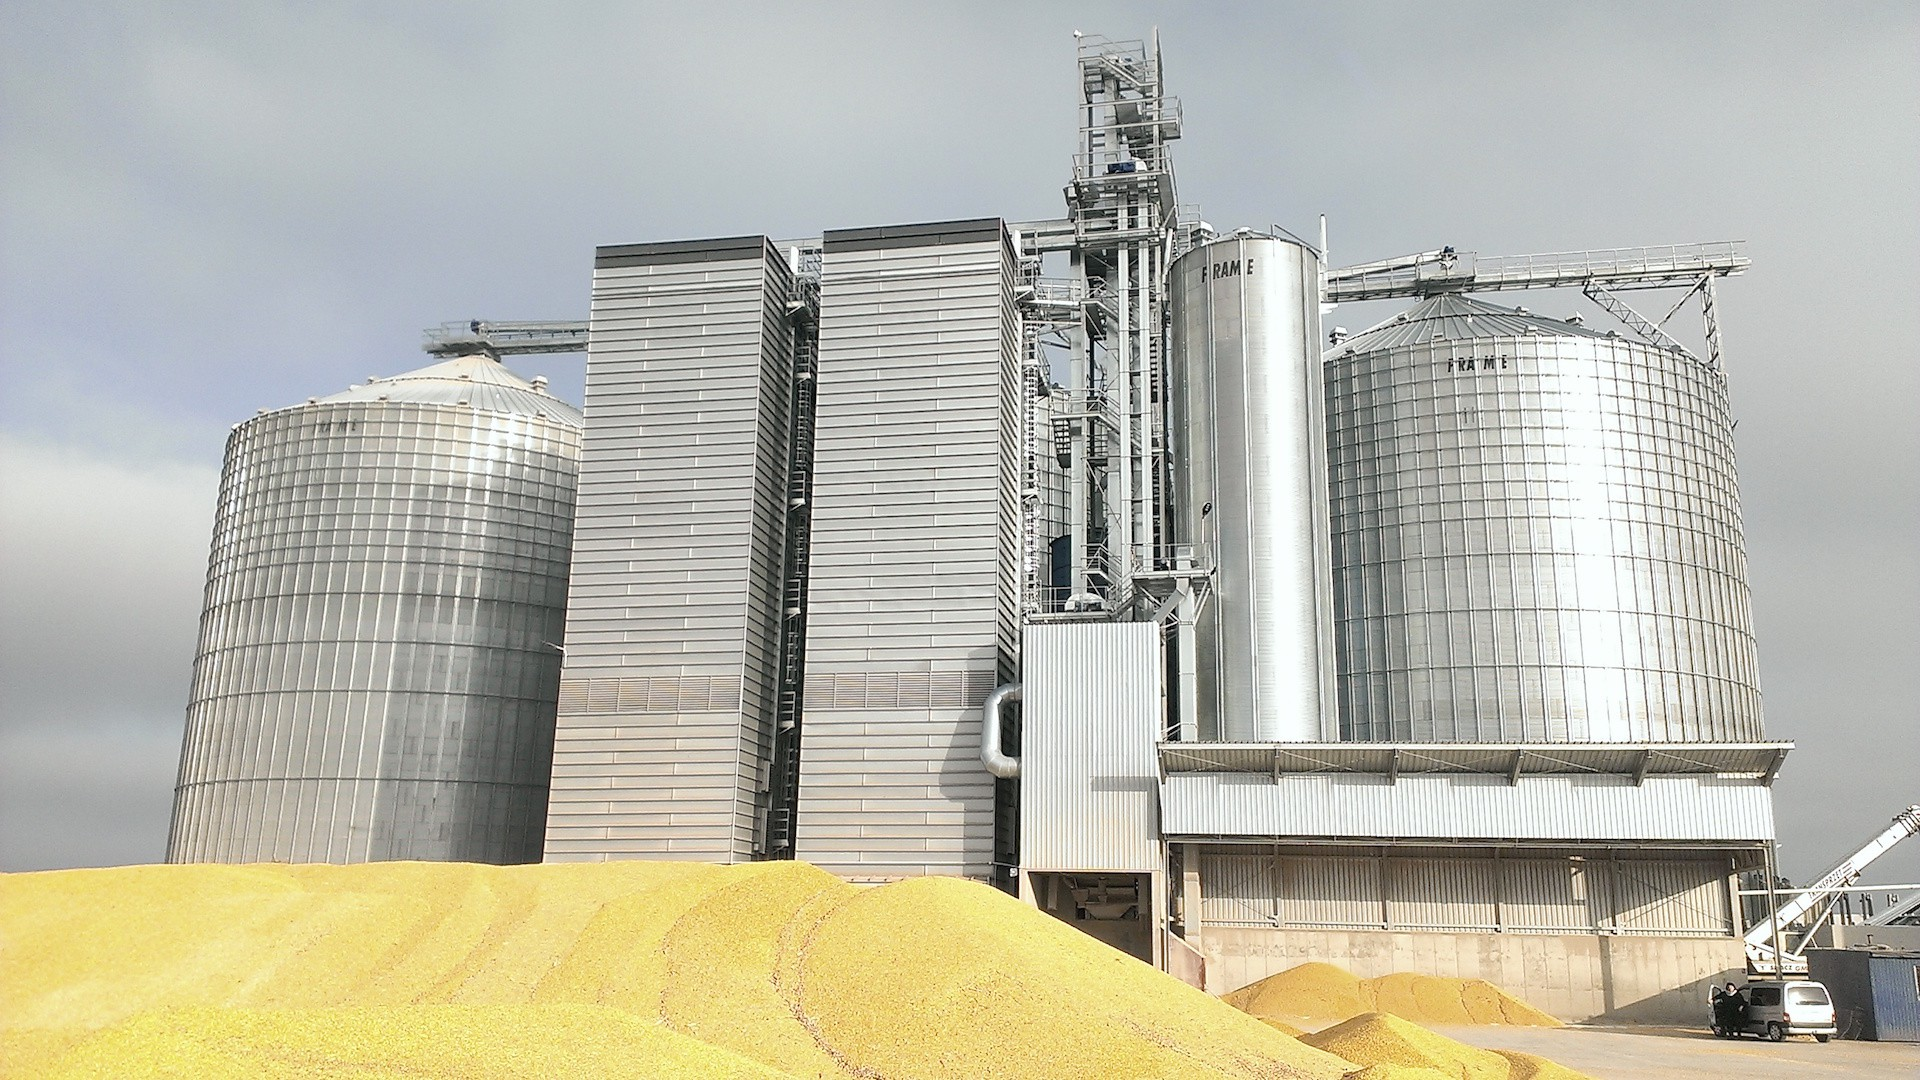 silos__Poland-header_homepage2